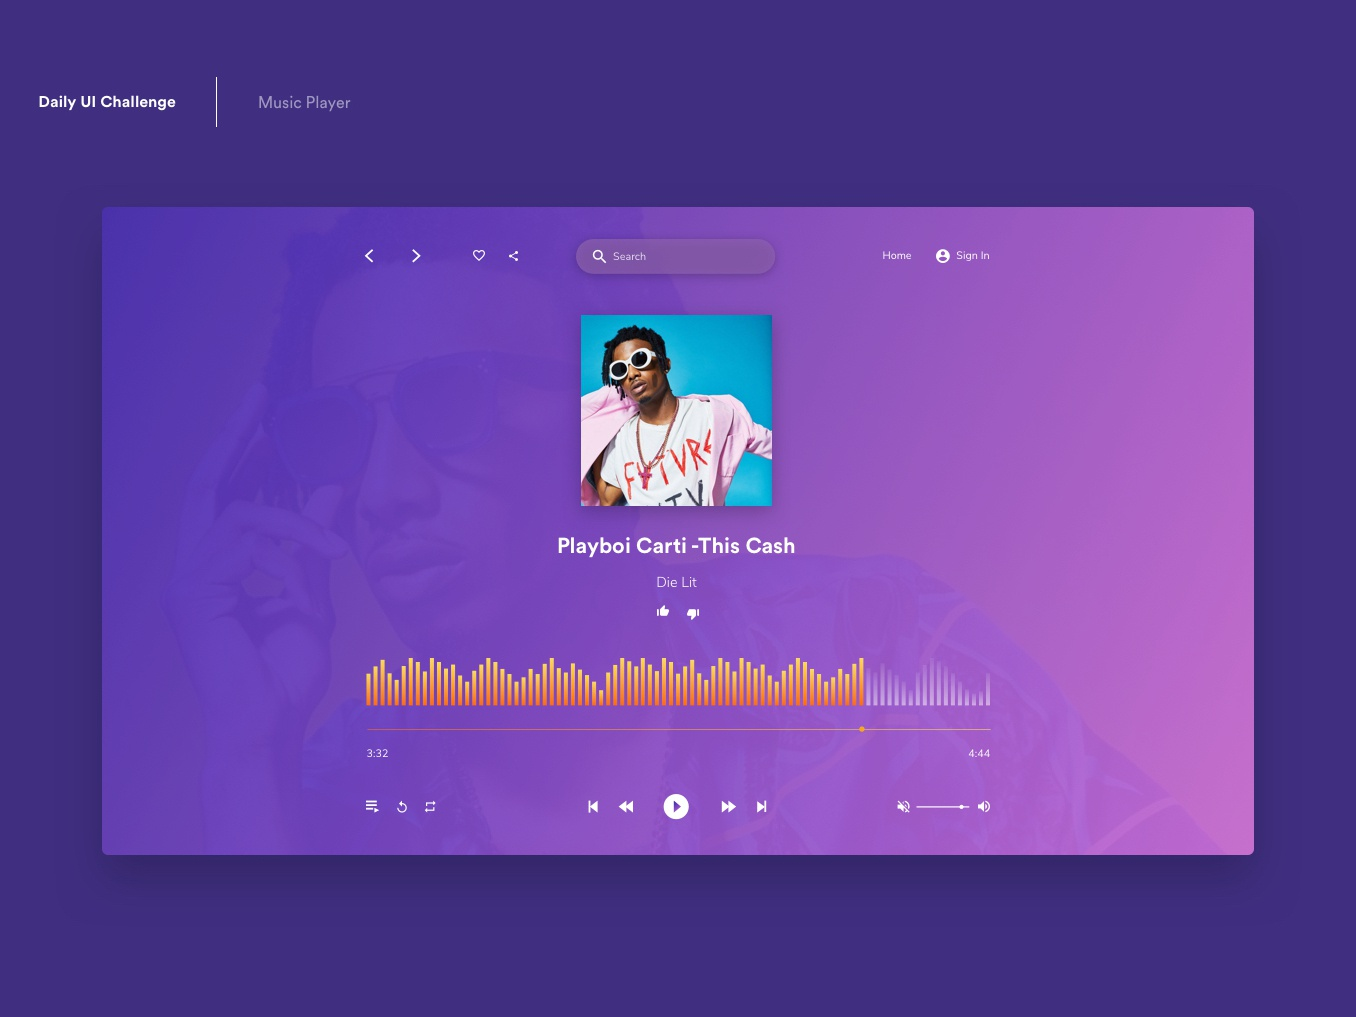 Daily Ui - Music Player music player ui music player brand website flat web illustration icon ux app dailyui daily 100 challenge daily 100 ui branding vector design